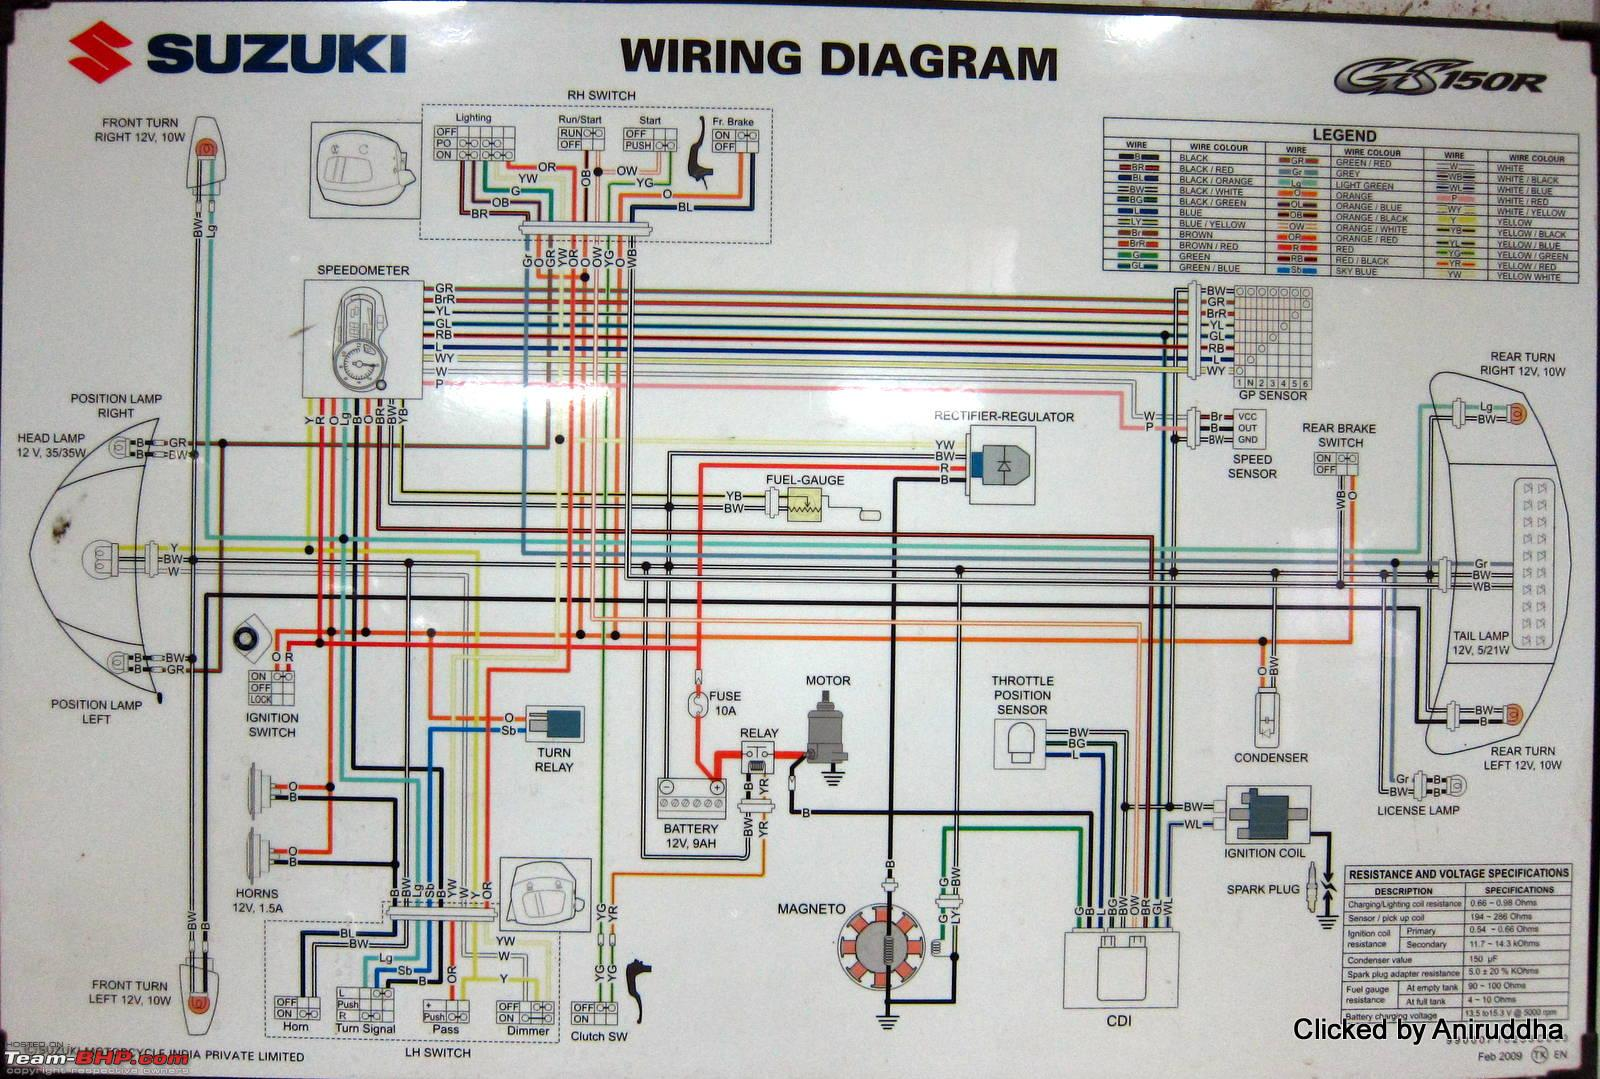 suzuki wiring diagram suzuki wiring diagram suzuki image wiring diagram suzuki motorcycle wiring diagrams suzuki wiring diagrams on suzuki